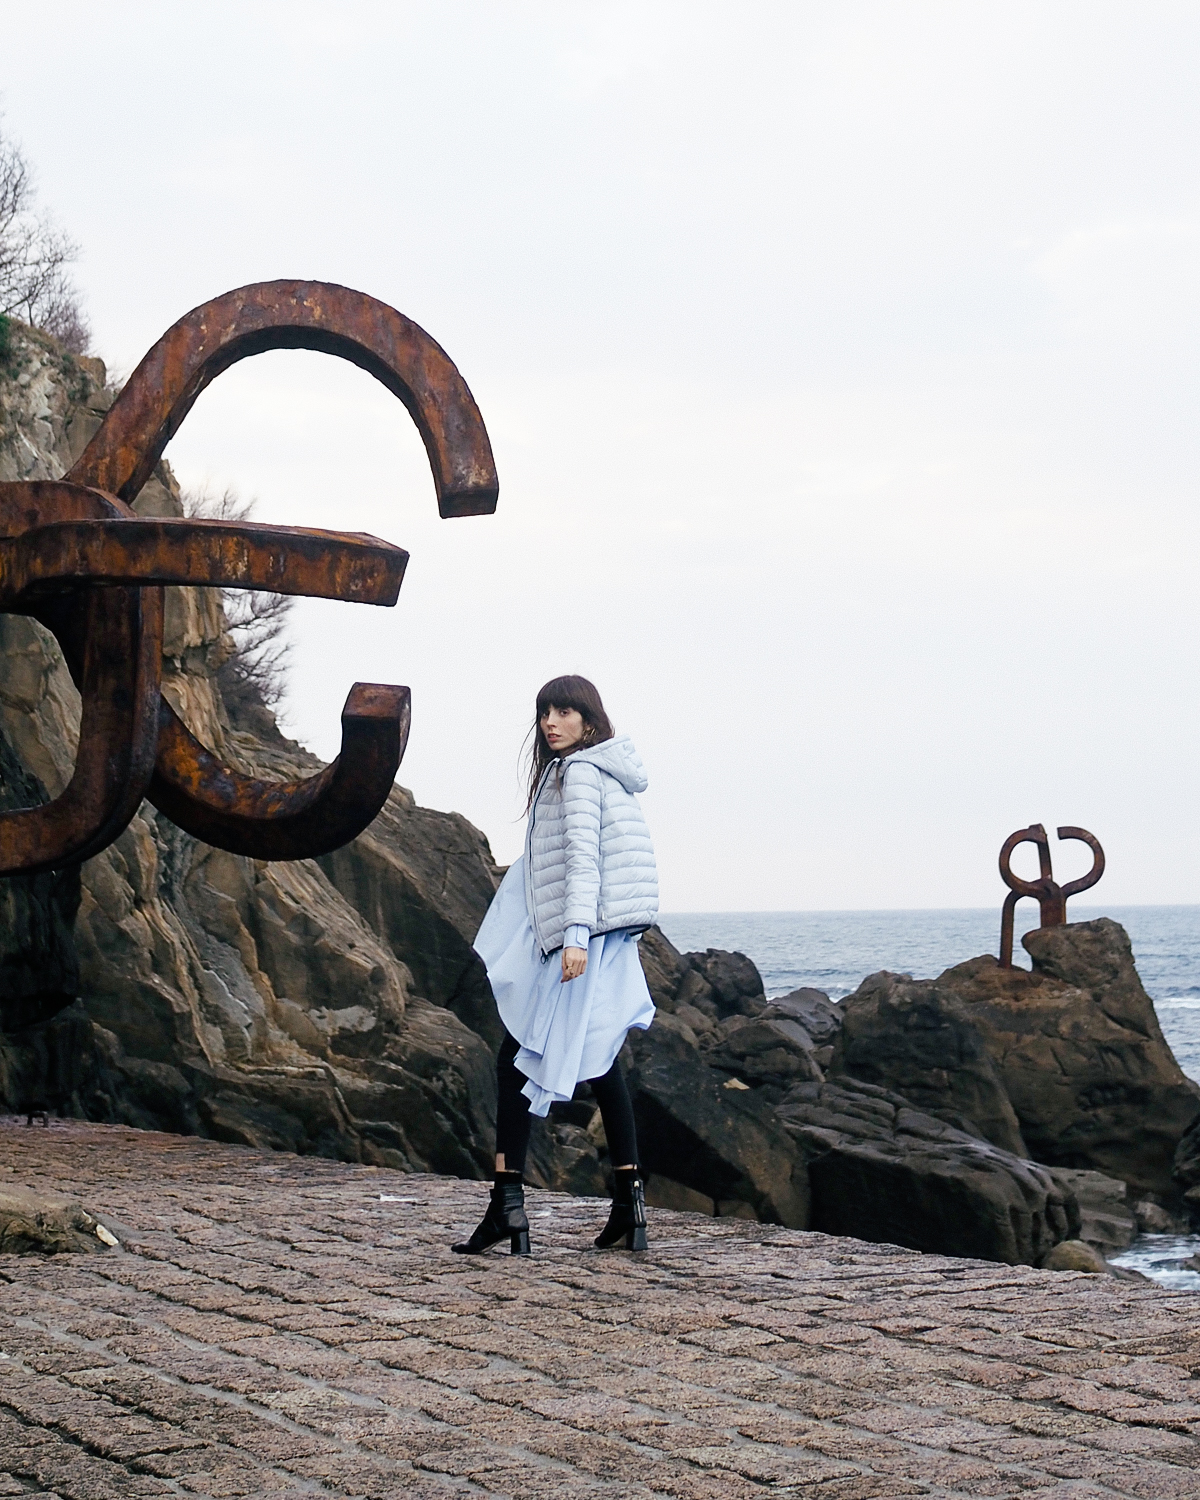 CHILLIDA-PEINE-DONOSTI-NORTH-SAILS-ANNA-PONSA-18